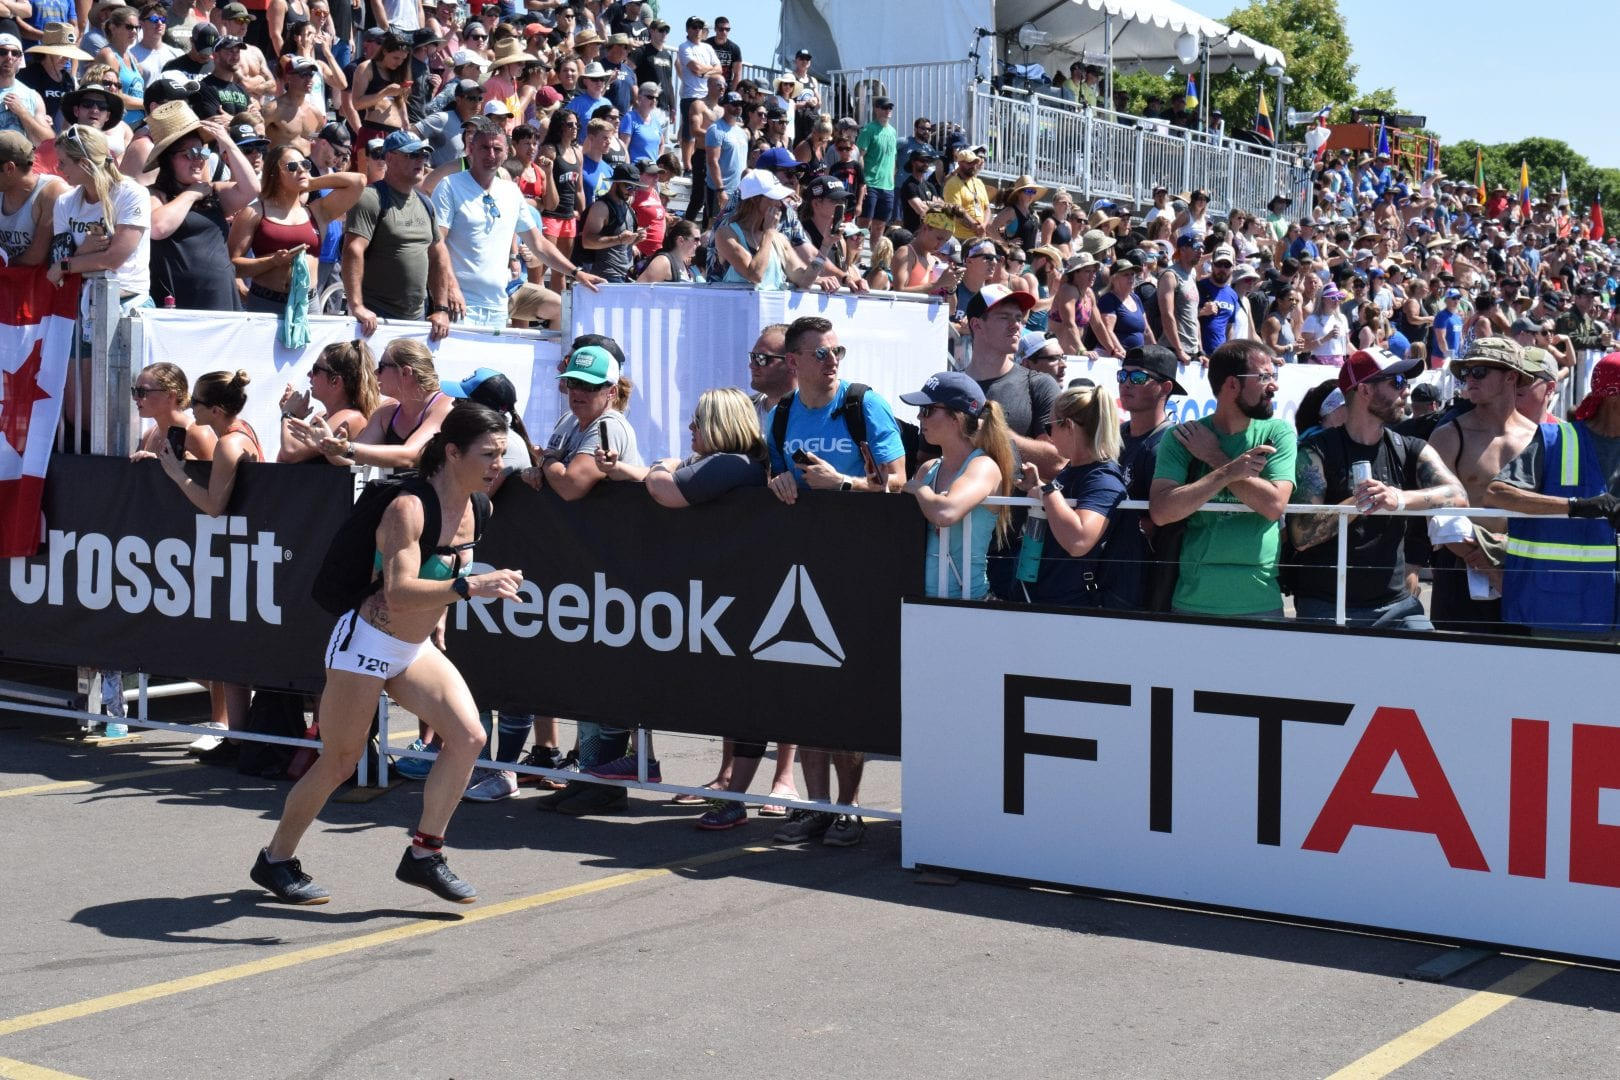 Cheryl Nasso of the United States completes the Ruck Run event at the 2019 CrossFit Games